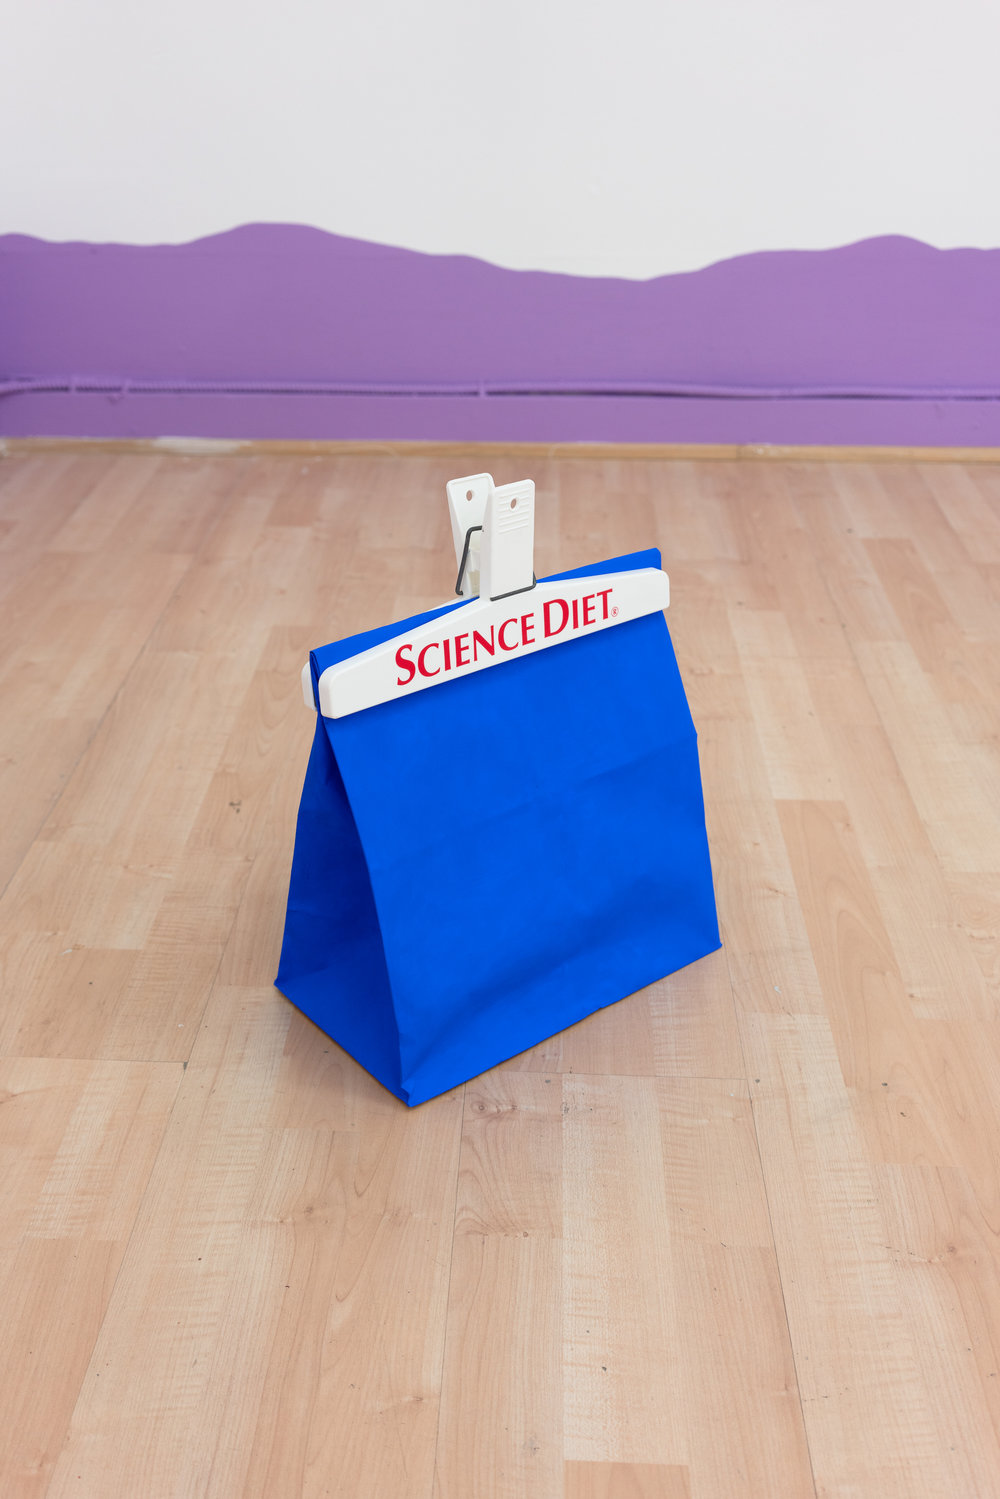 Sarah Hotchkiss + Stephanie Rohlfs,  Science Diet , 2018, Paper bag, plastic clip, gouache, audio loop, 12 x 12 x 7 in.